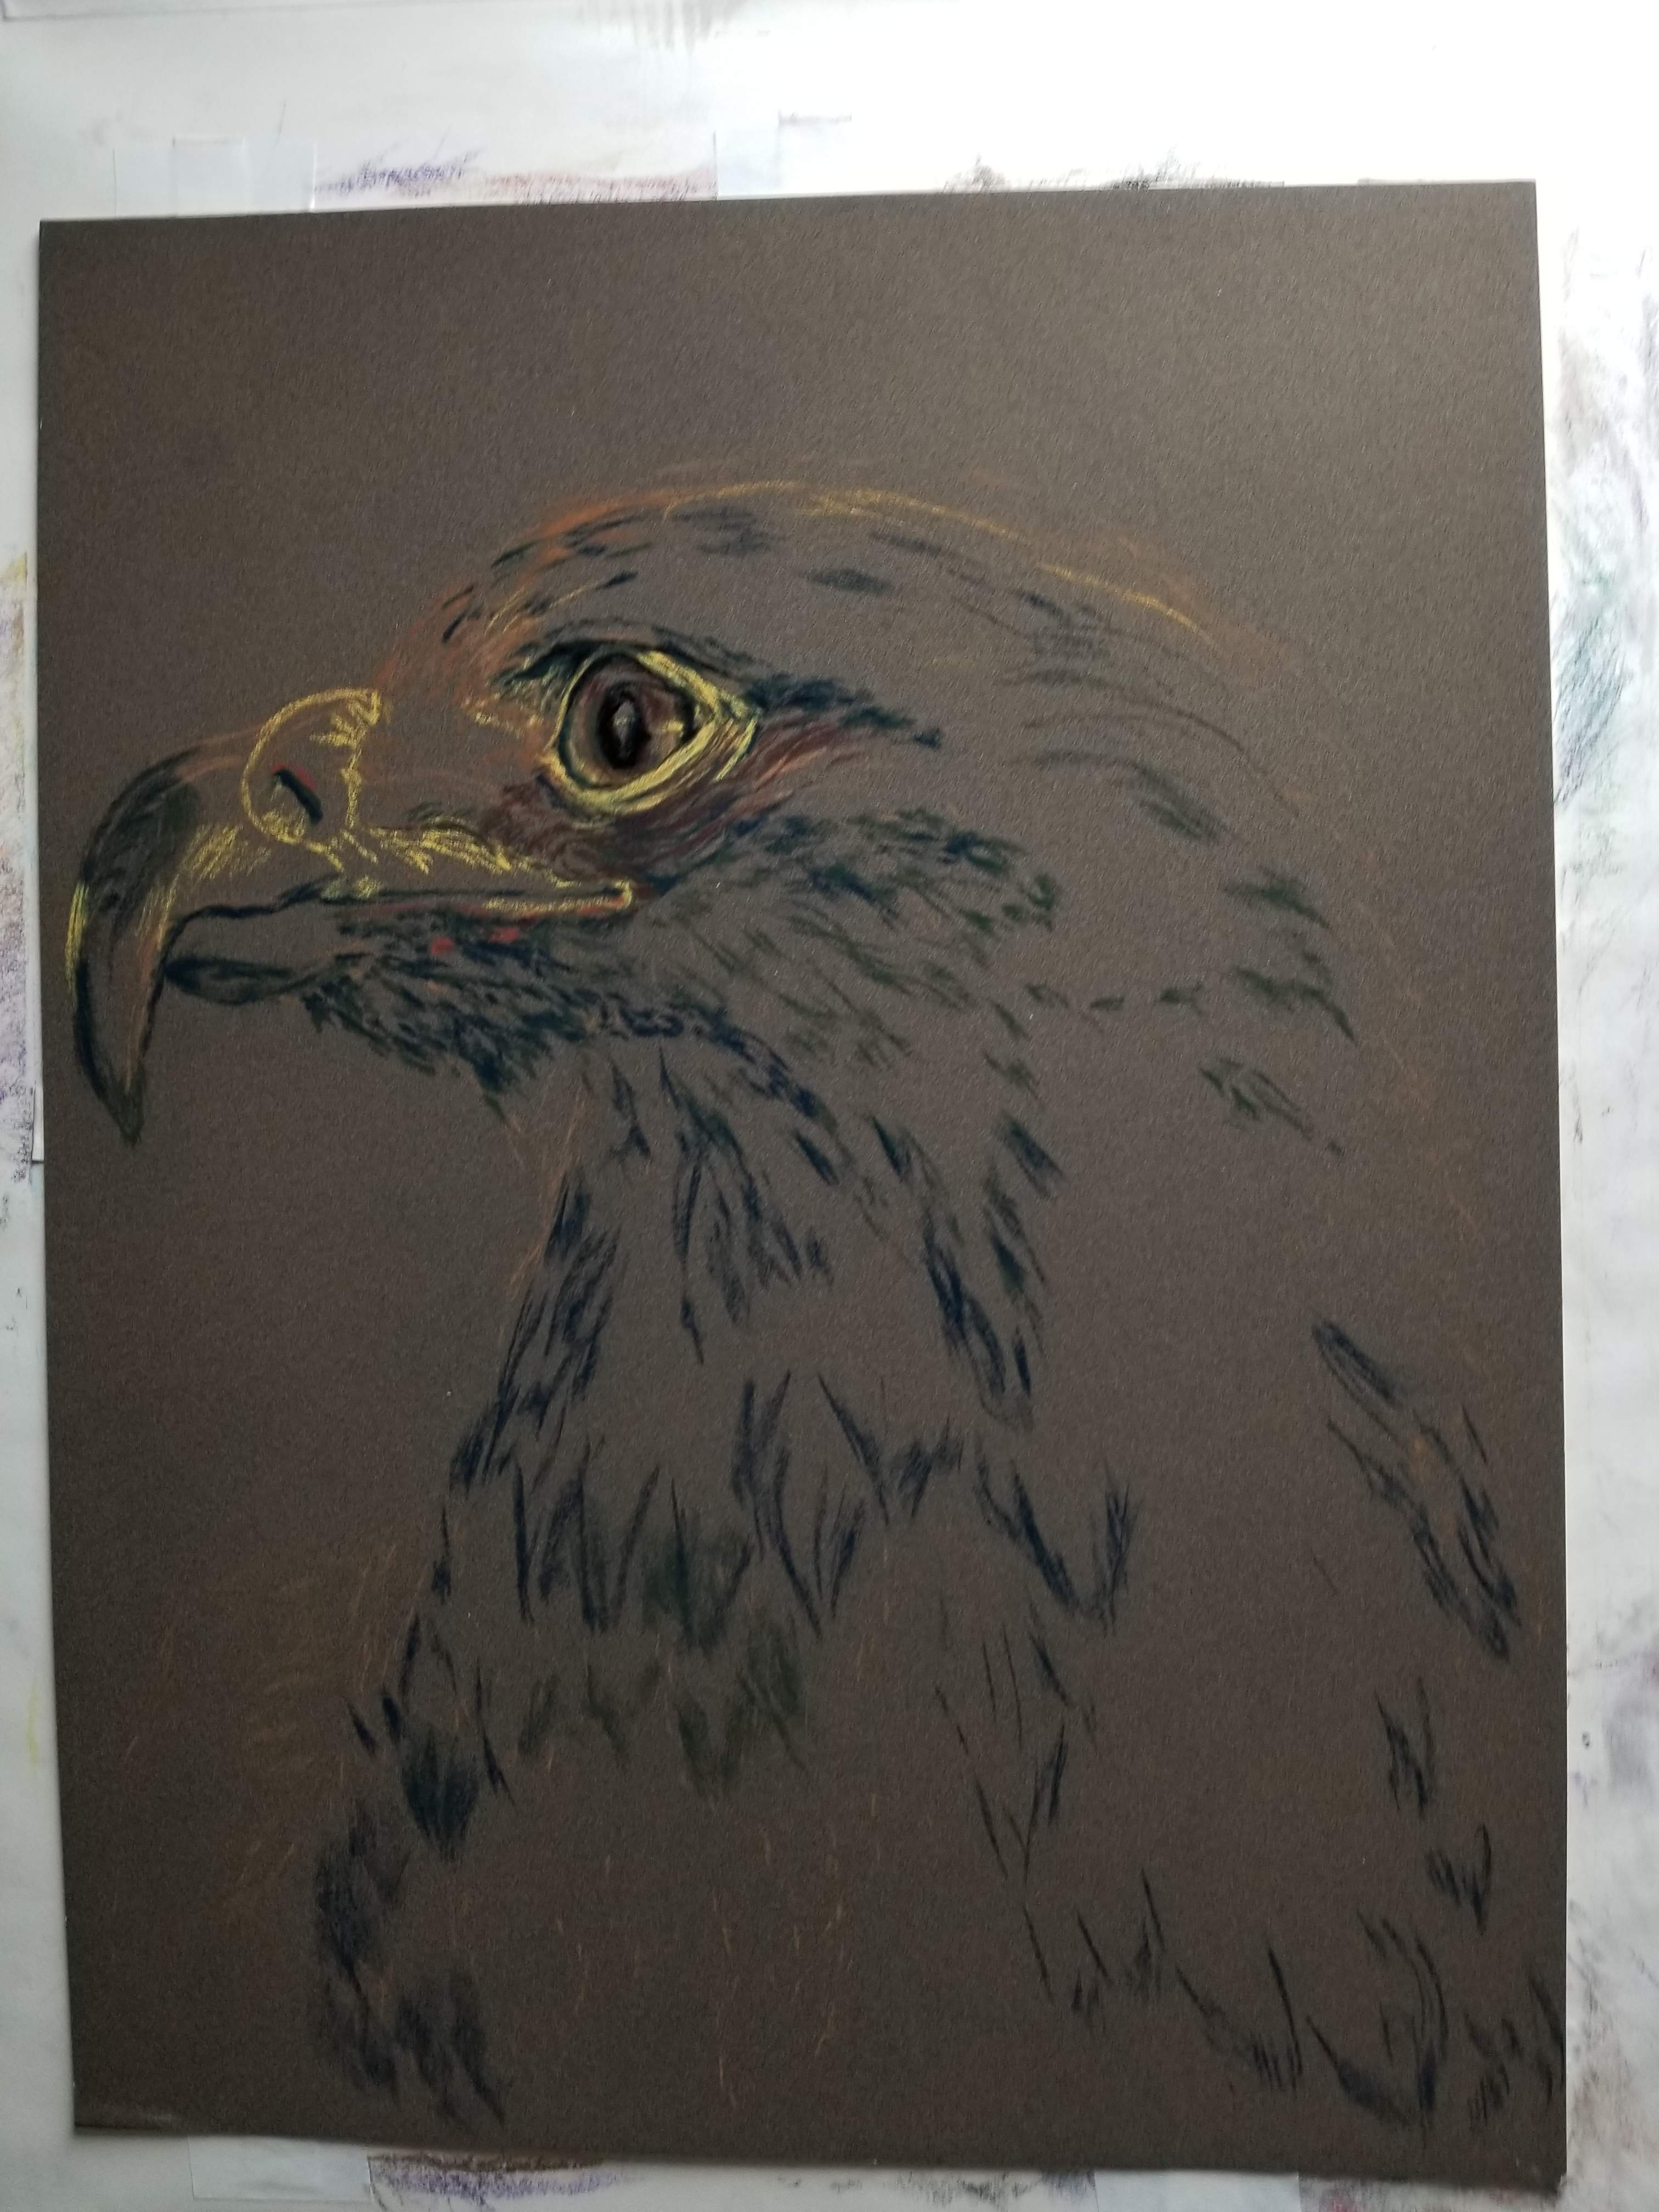 A Hawk's Gaze {initial draft}